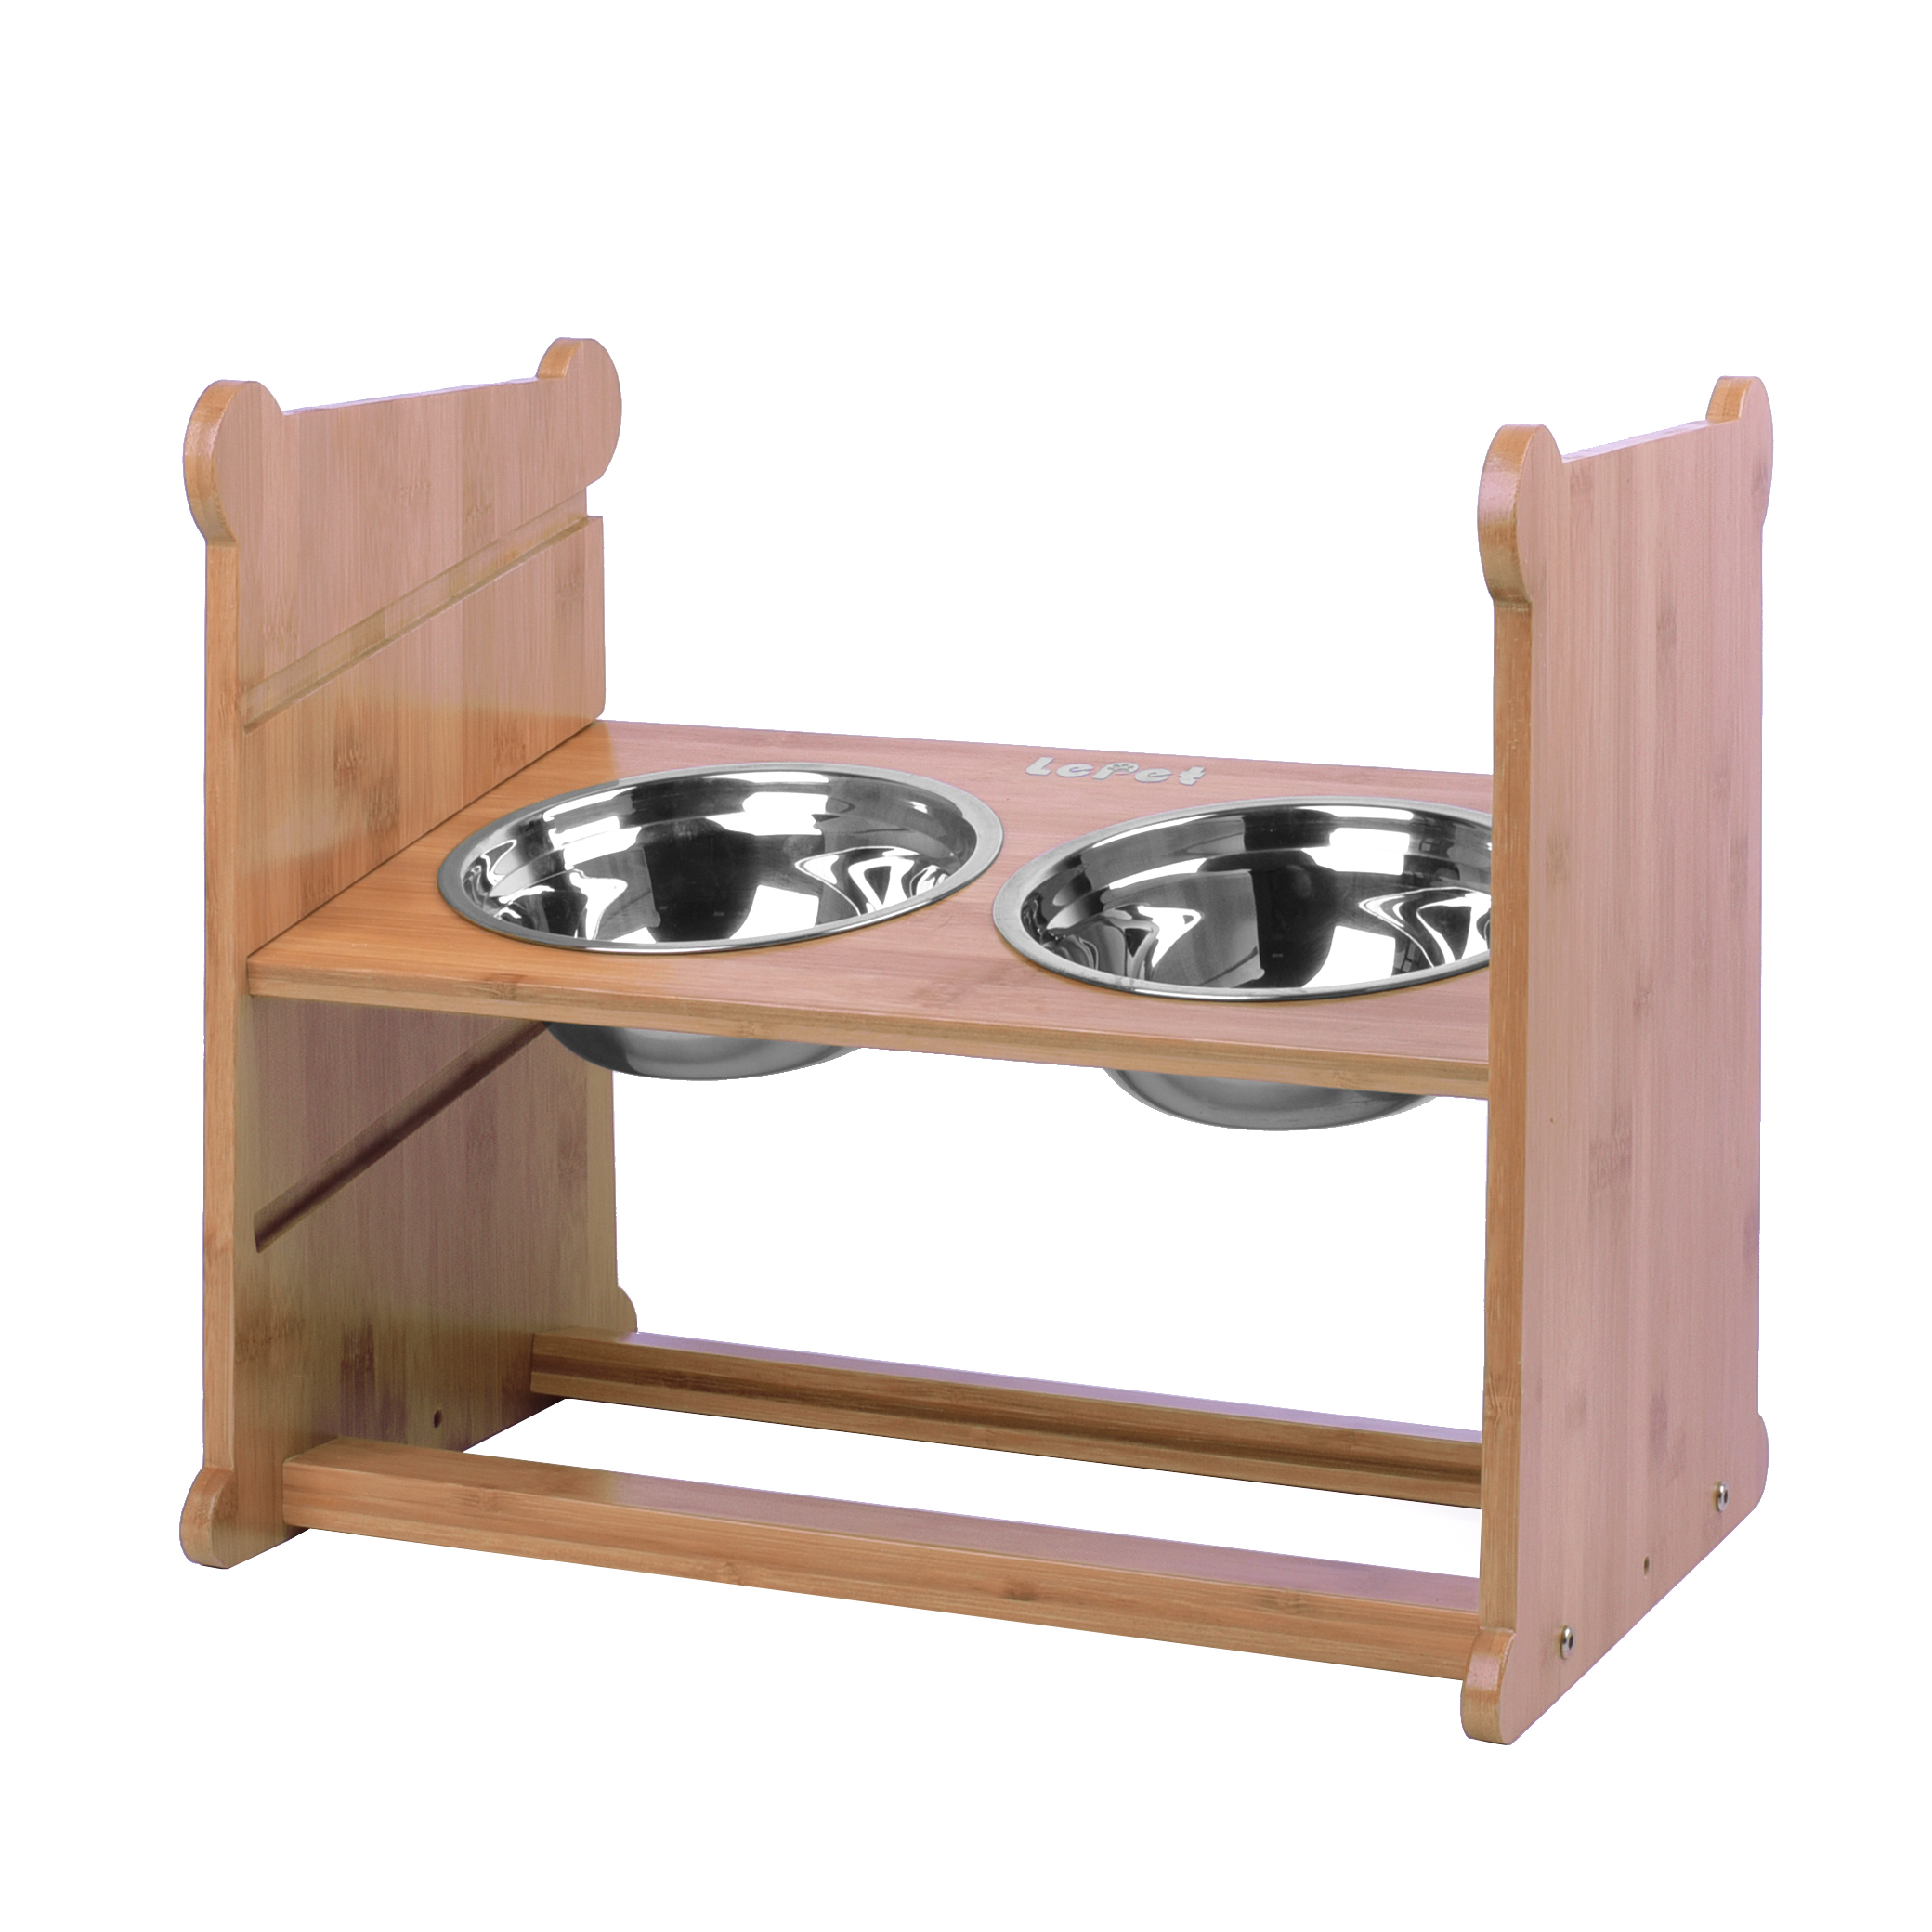 Elevated Pet Feeder with 2 Stainless Steel Bowls